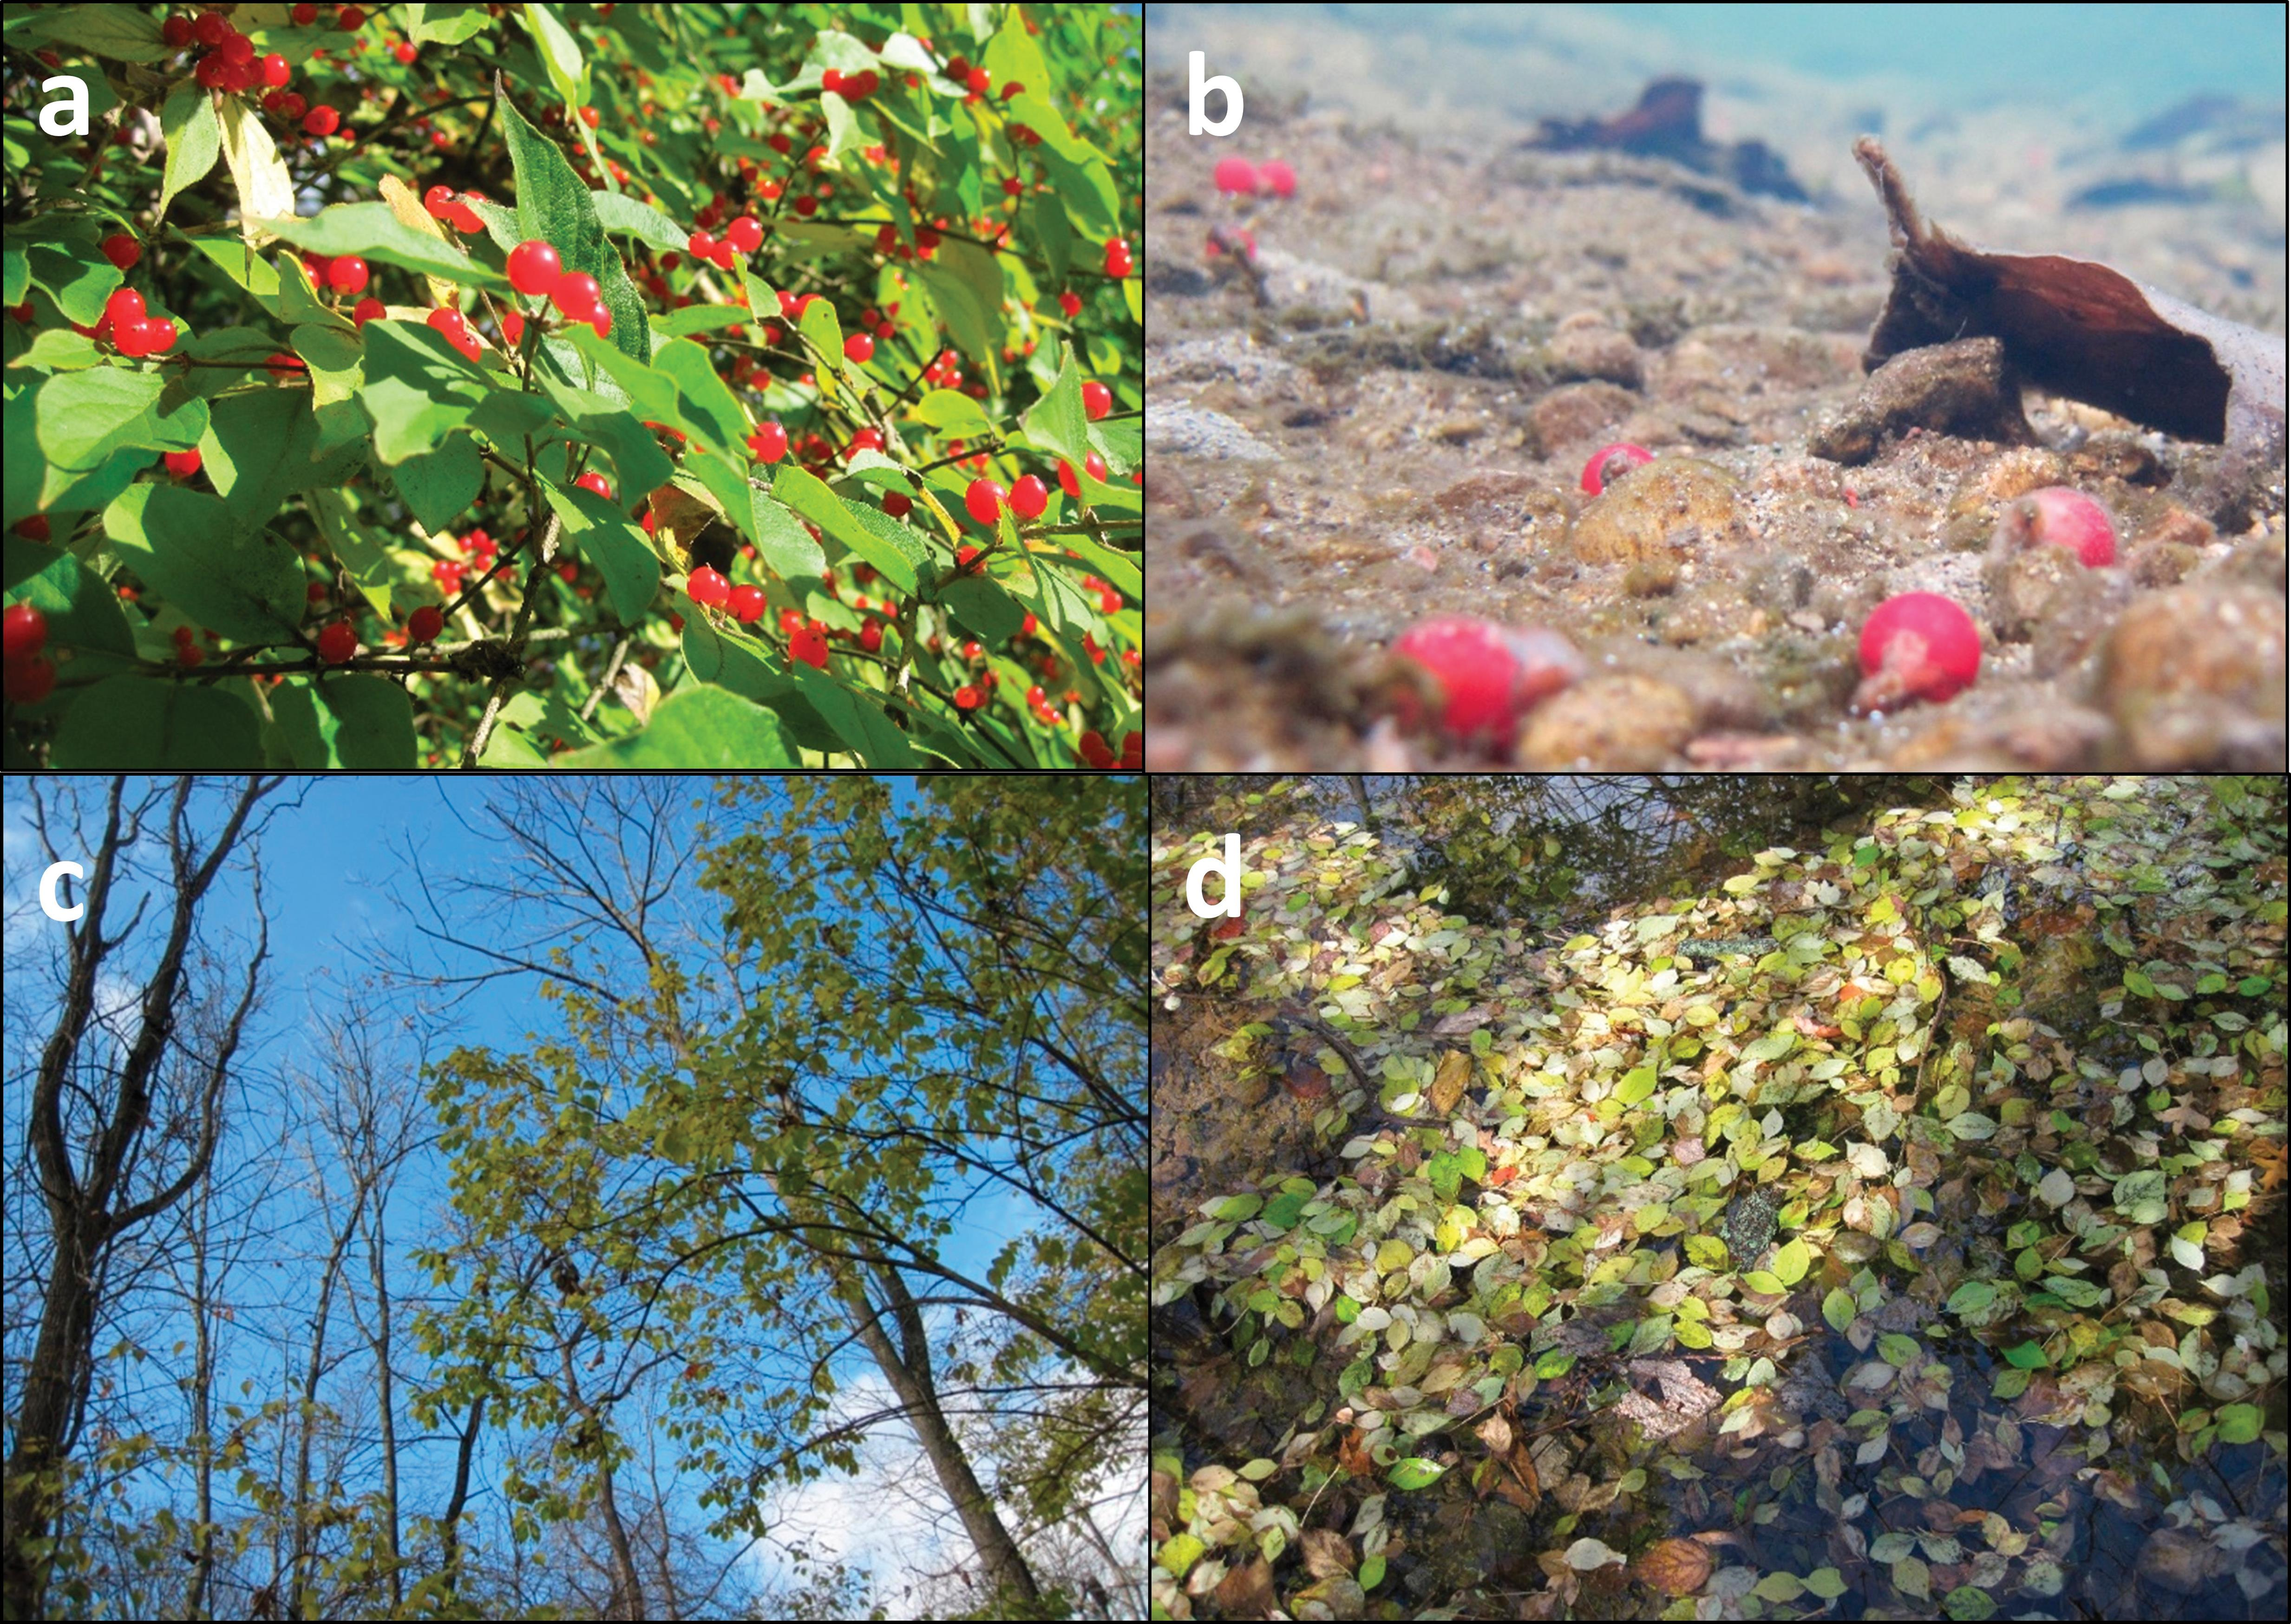 A review on the invasion ecology of Amur honeysuckle (Lonicera